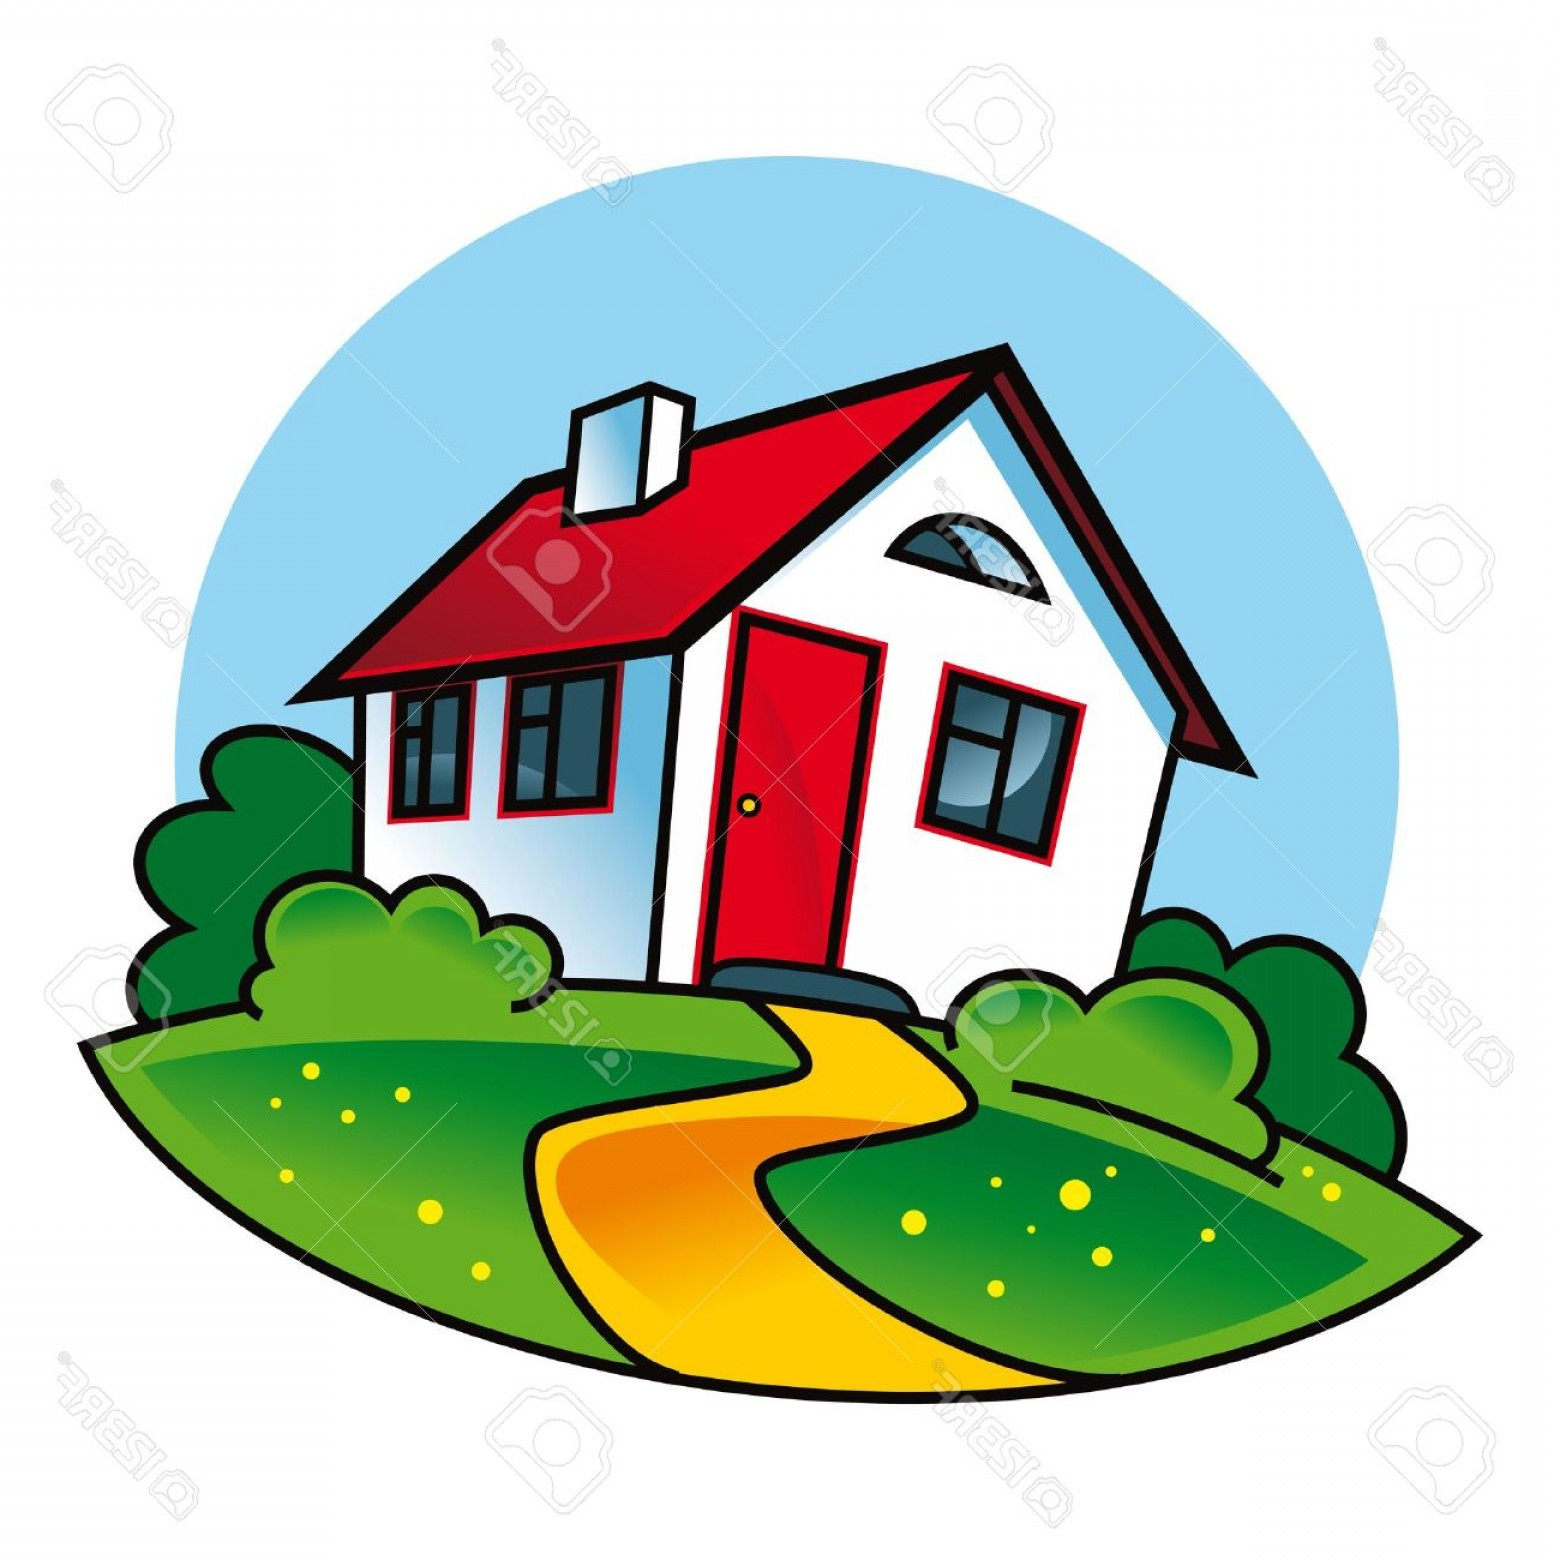 House Clip Art Vector: Photocountry House Architecture Building Village Apartment Nature